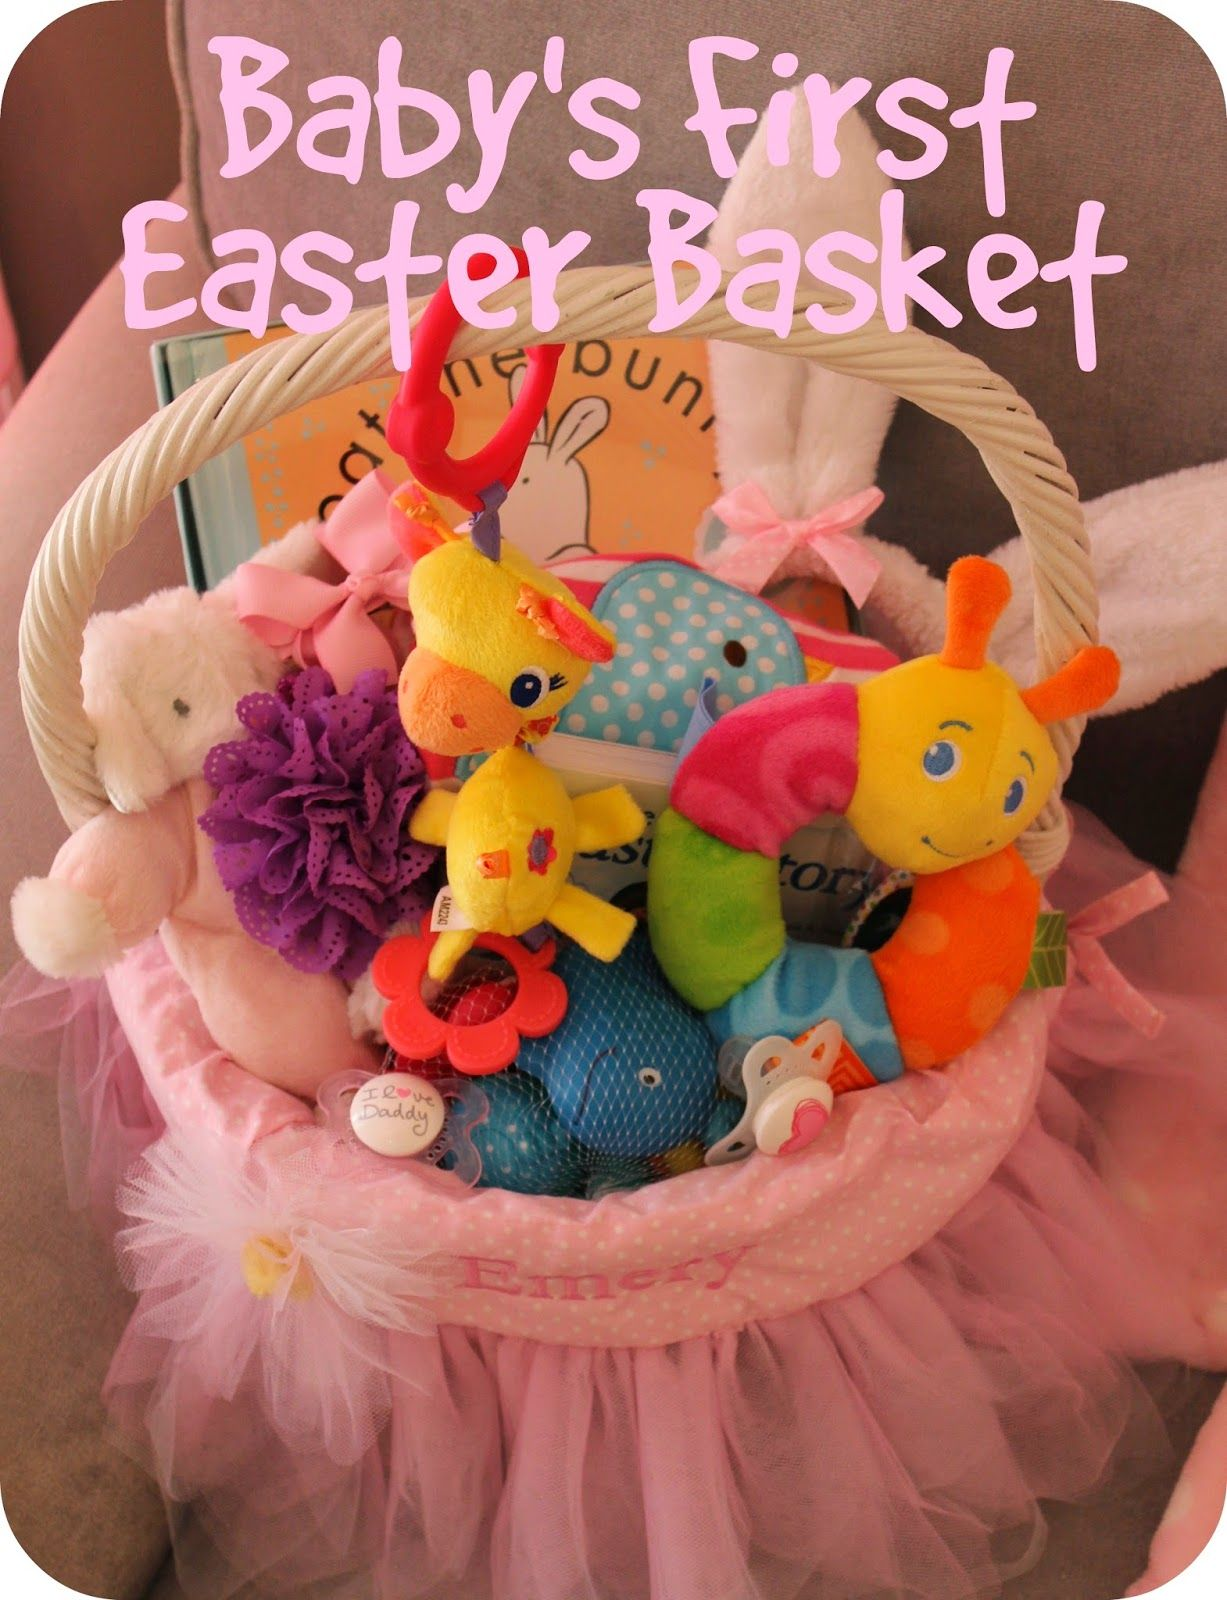 Babys first easter basket ideas for a newborn baby pinterest babys first easter basket ideas for a newborn negle Image collections